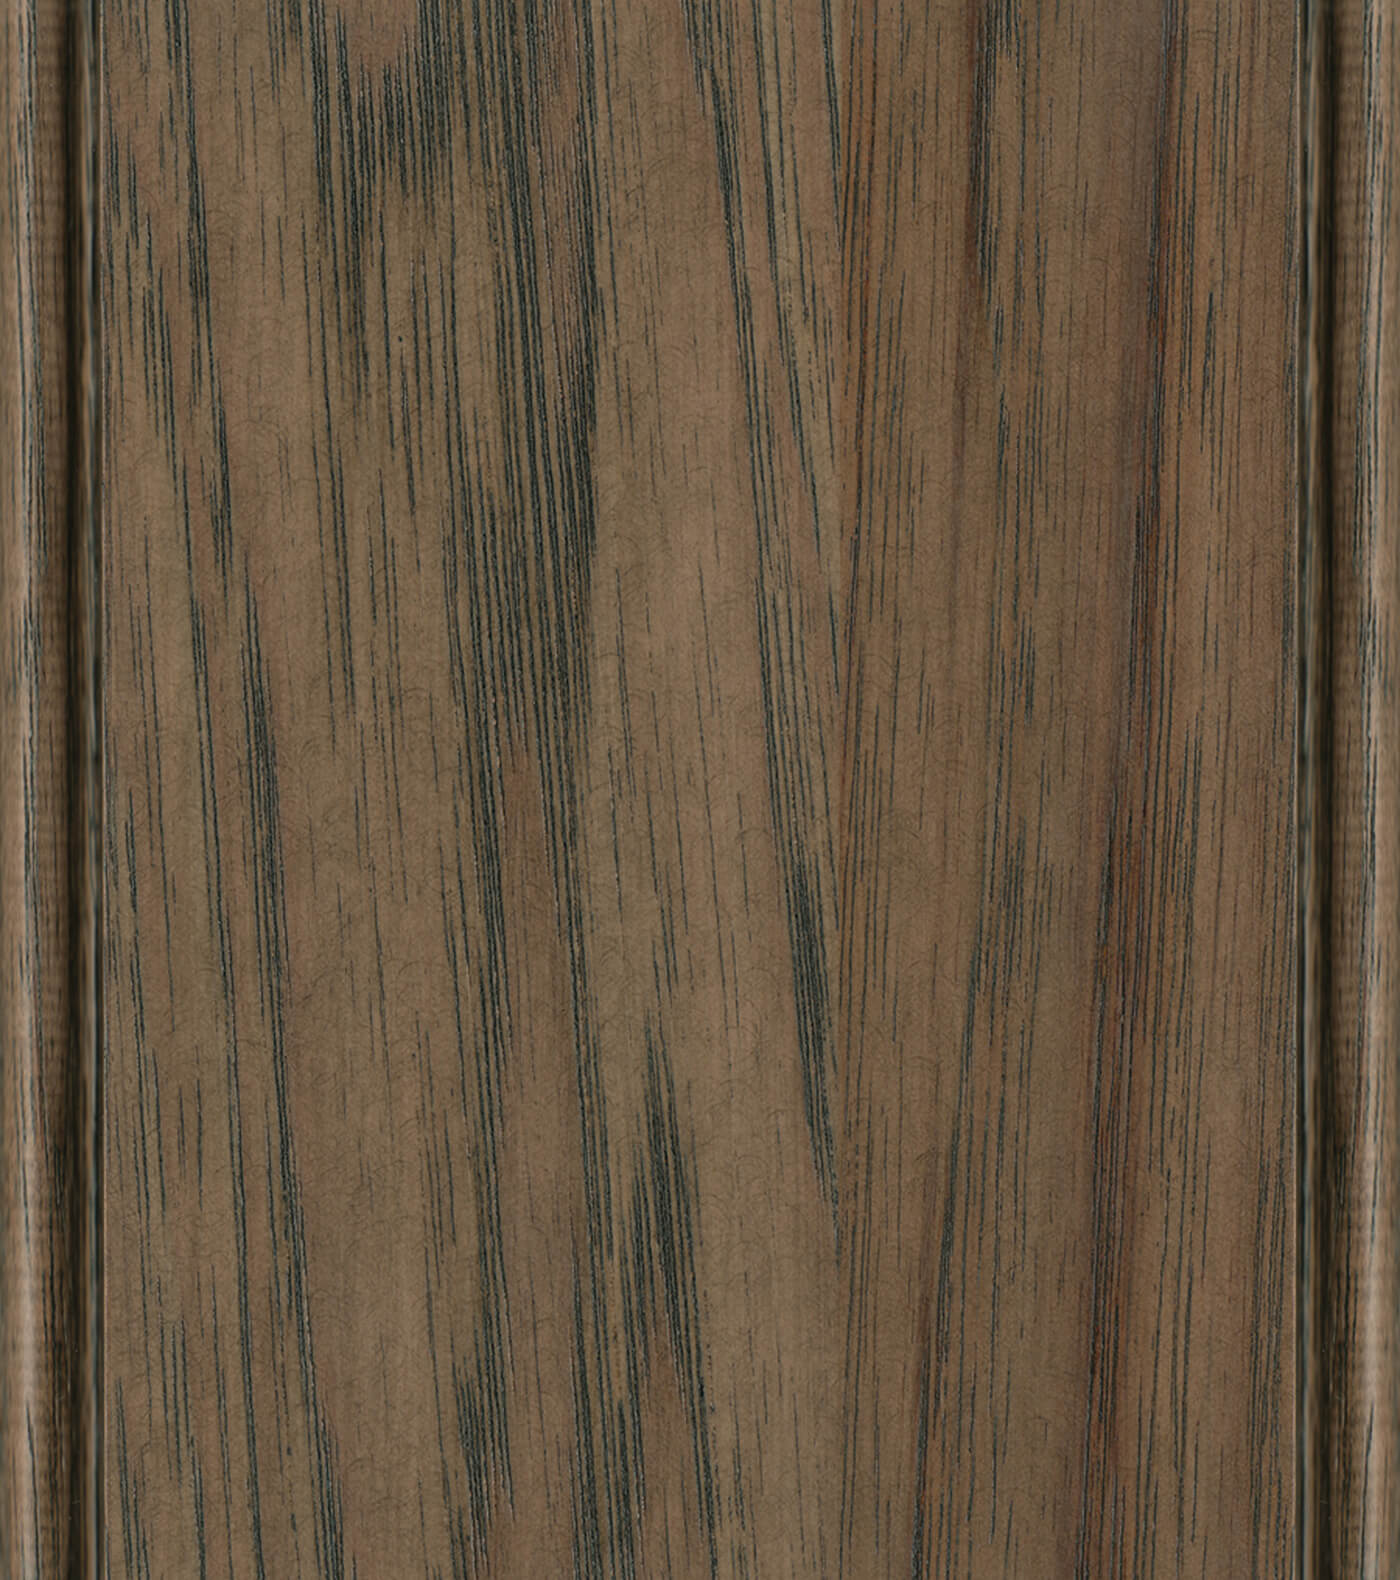 Morel Stain on Hickory or Rustic Hickory